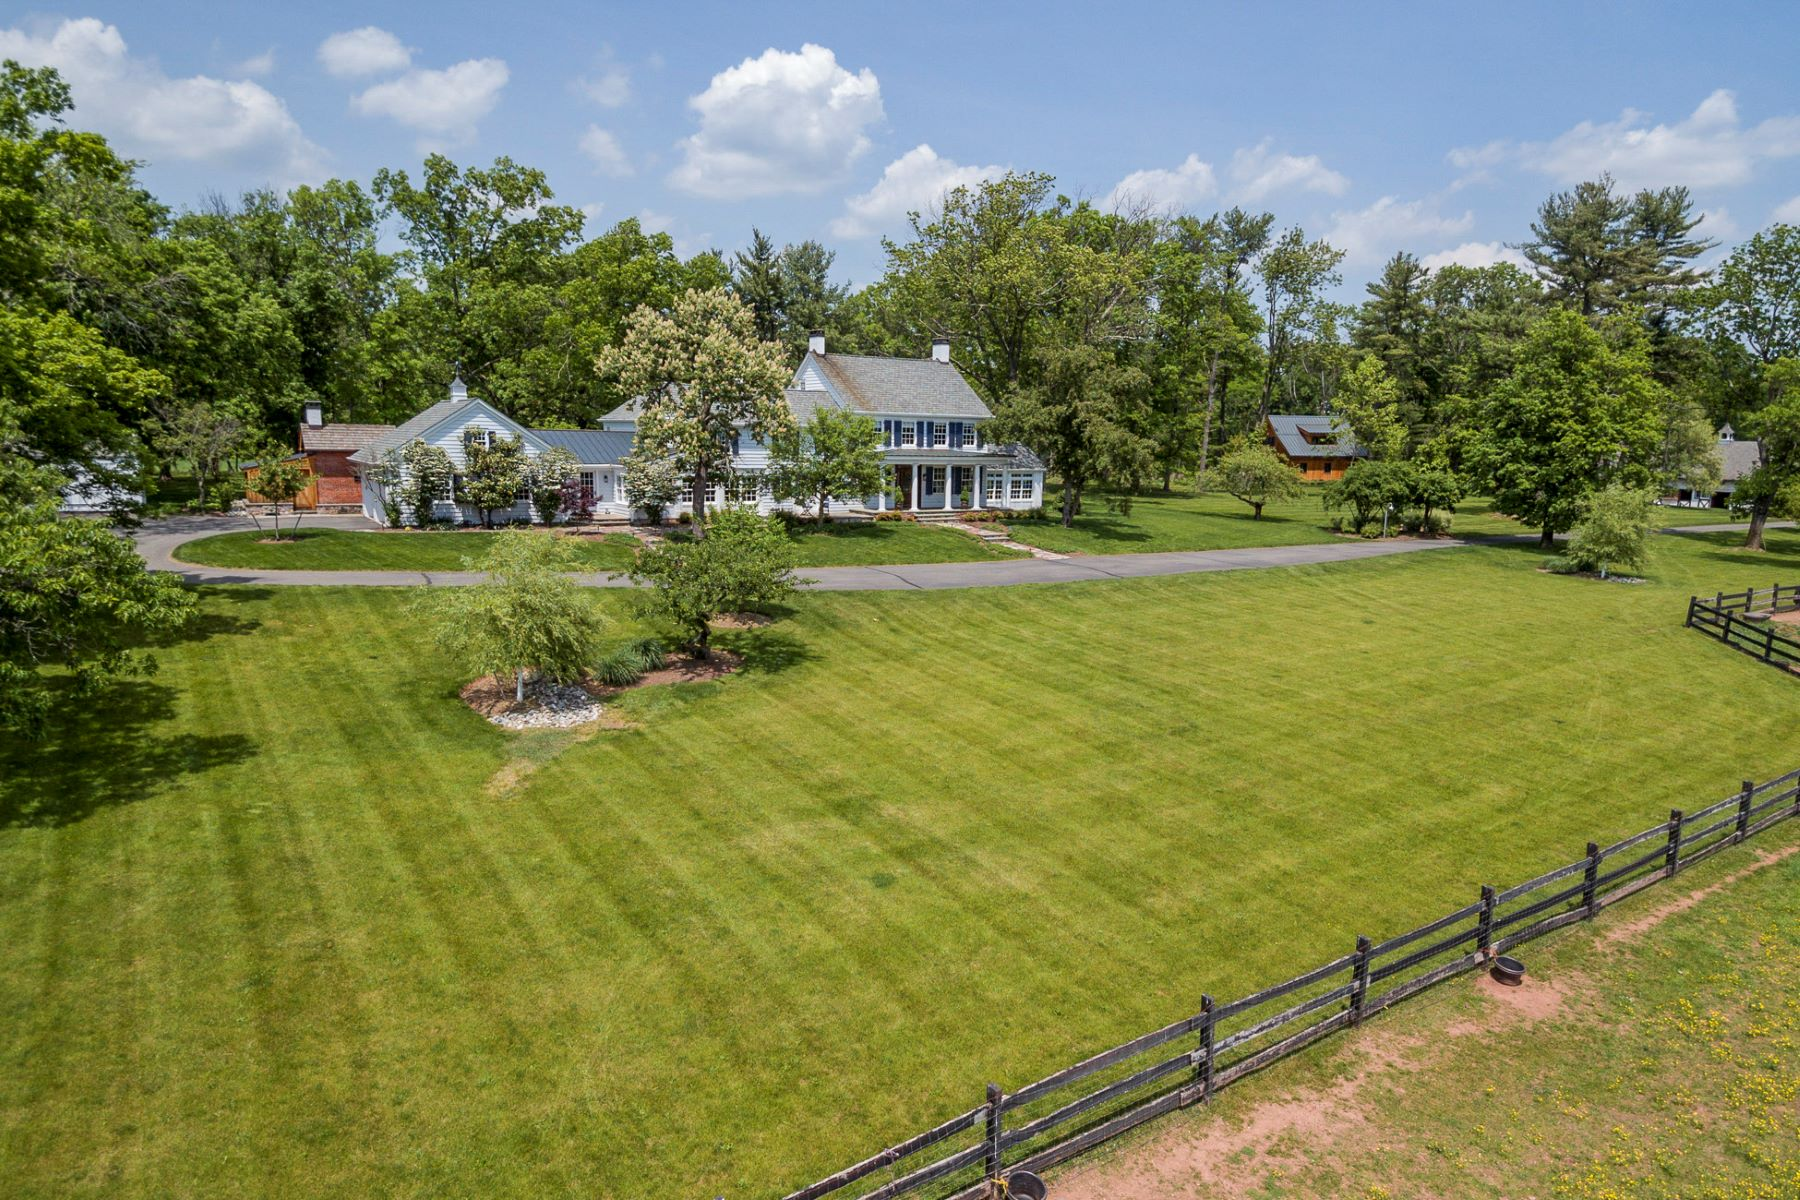 Single Family Home for Sale at Historic Farm Reimagined for the Modern Equestrian - Hopewell Township 266 Province Line Road Skillman, New Jersey 08558 United States